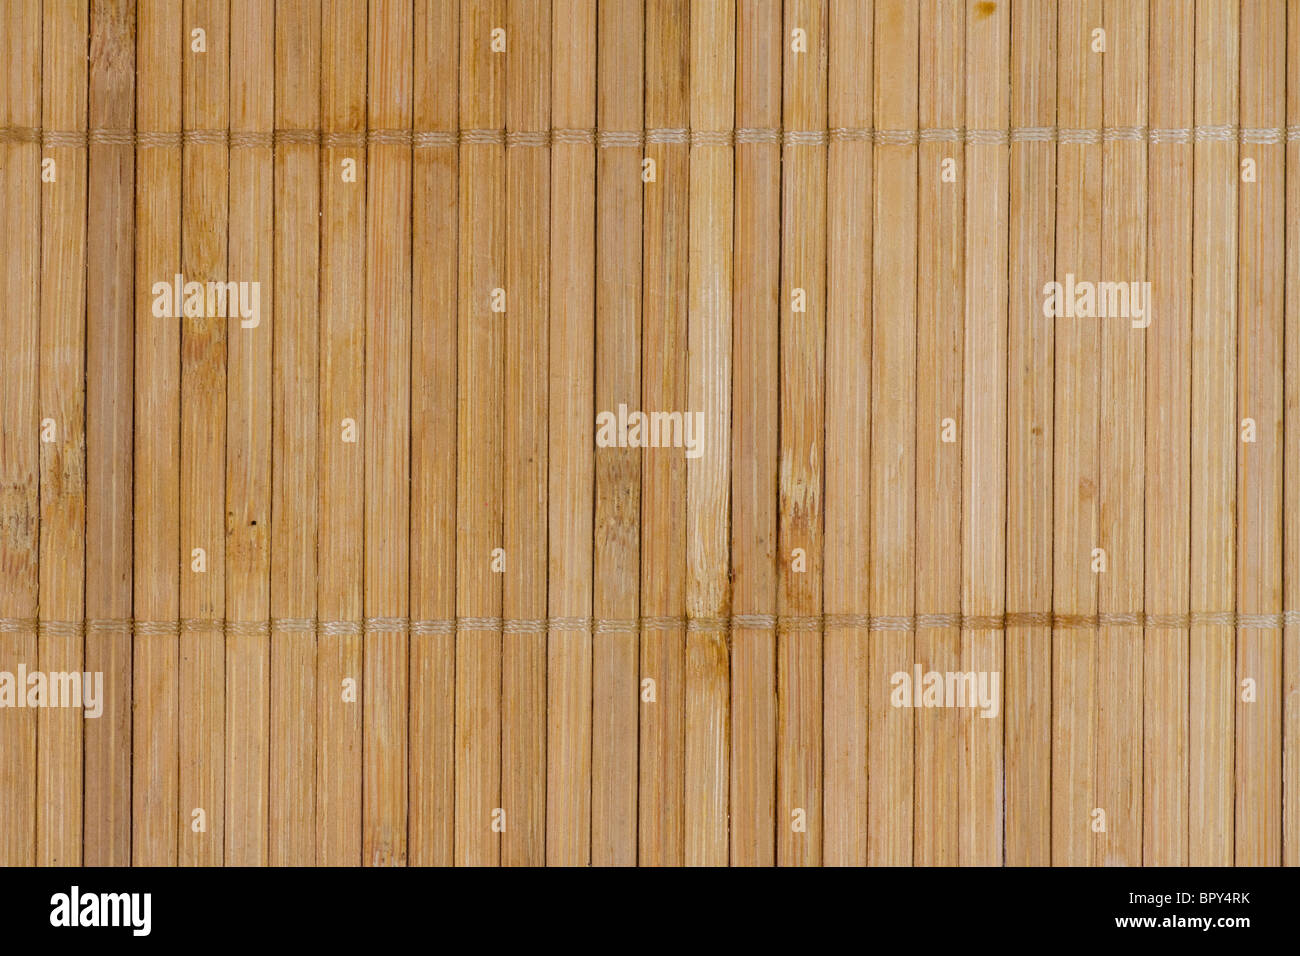 Bamboo background board. horizontal pattern. nice texture. - Stock Image